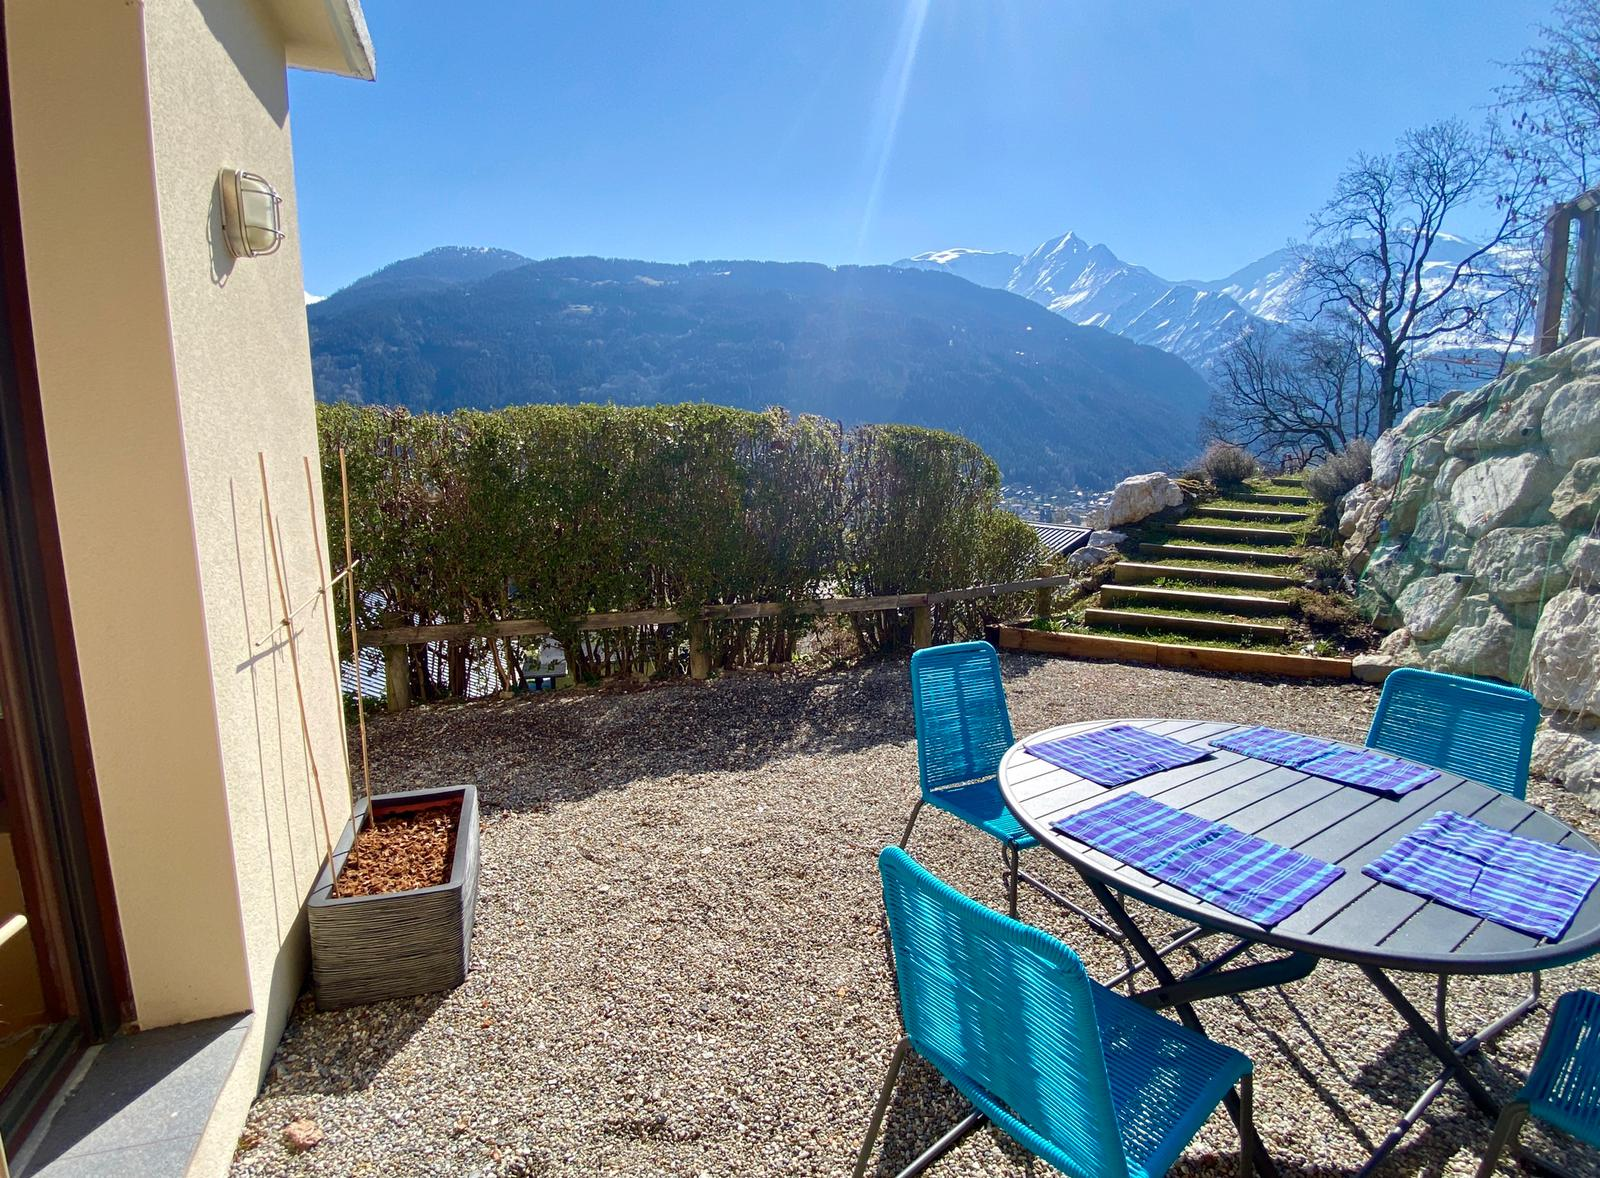 St Gervais-les-Bains Accommodation in St Gervais